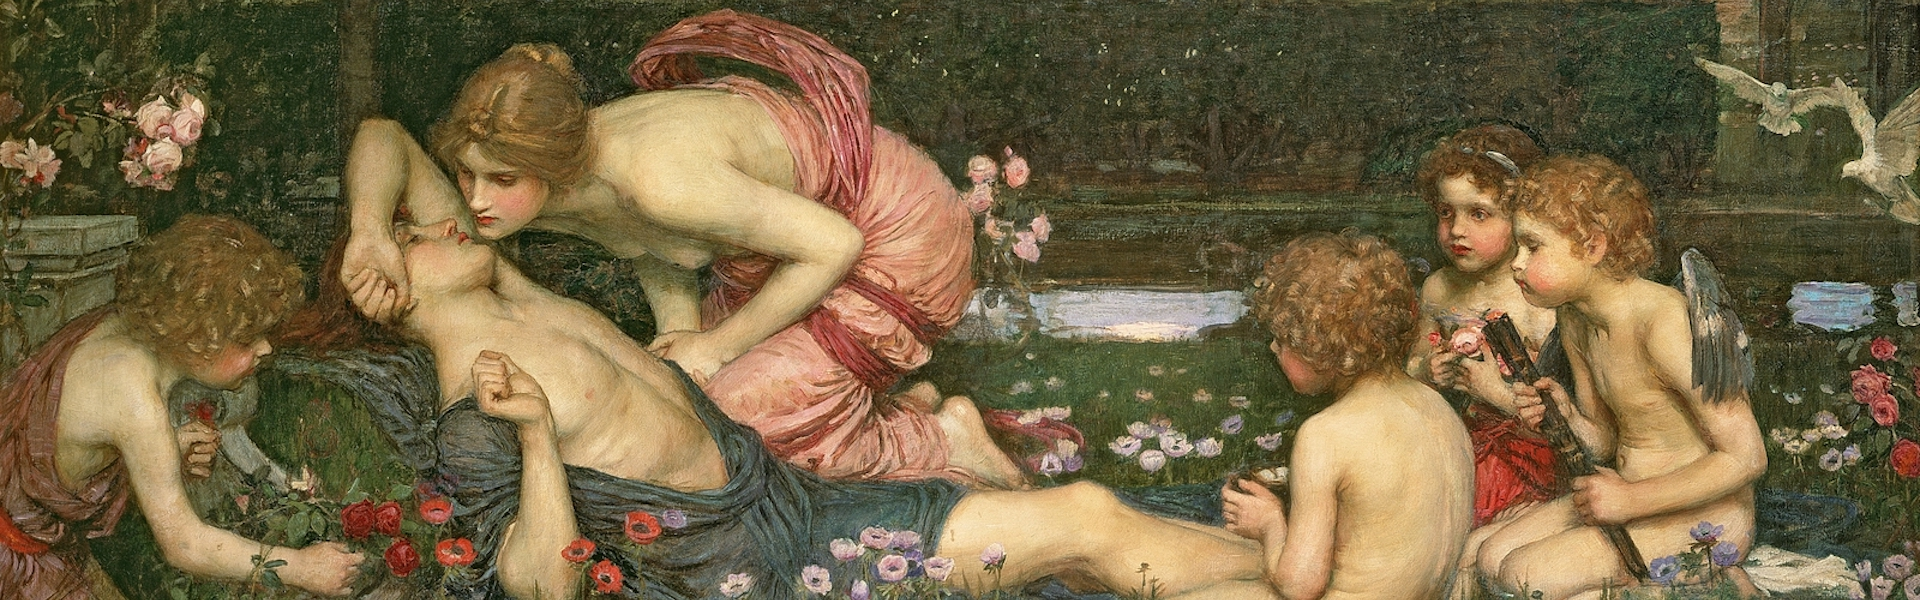 Waterhouse,_John_William_-_The_Awakening_of_Adonis